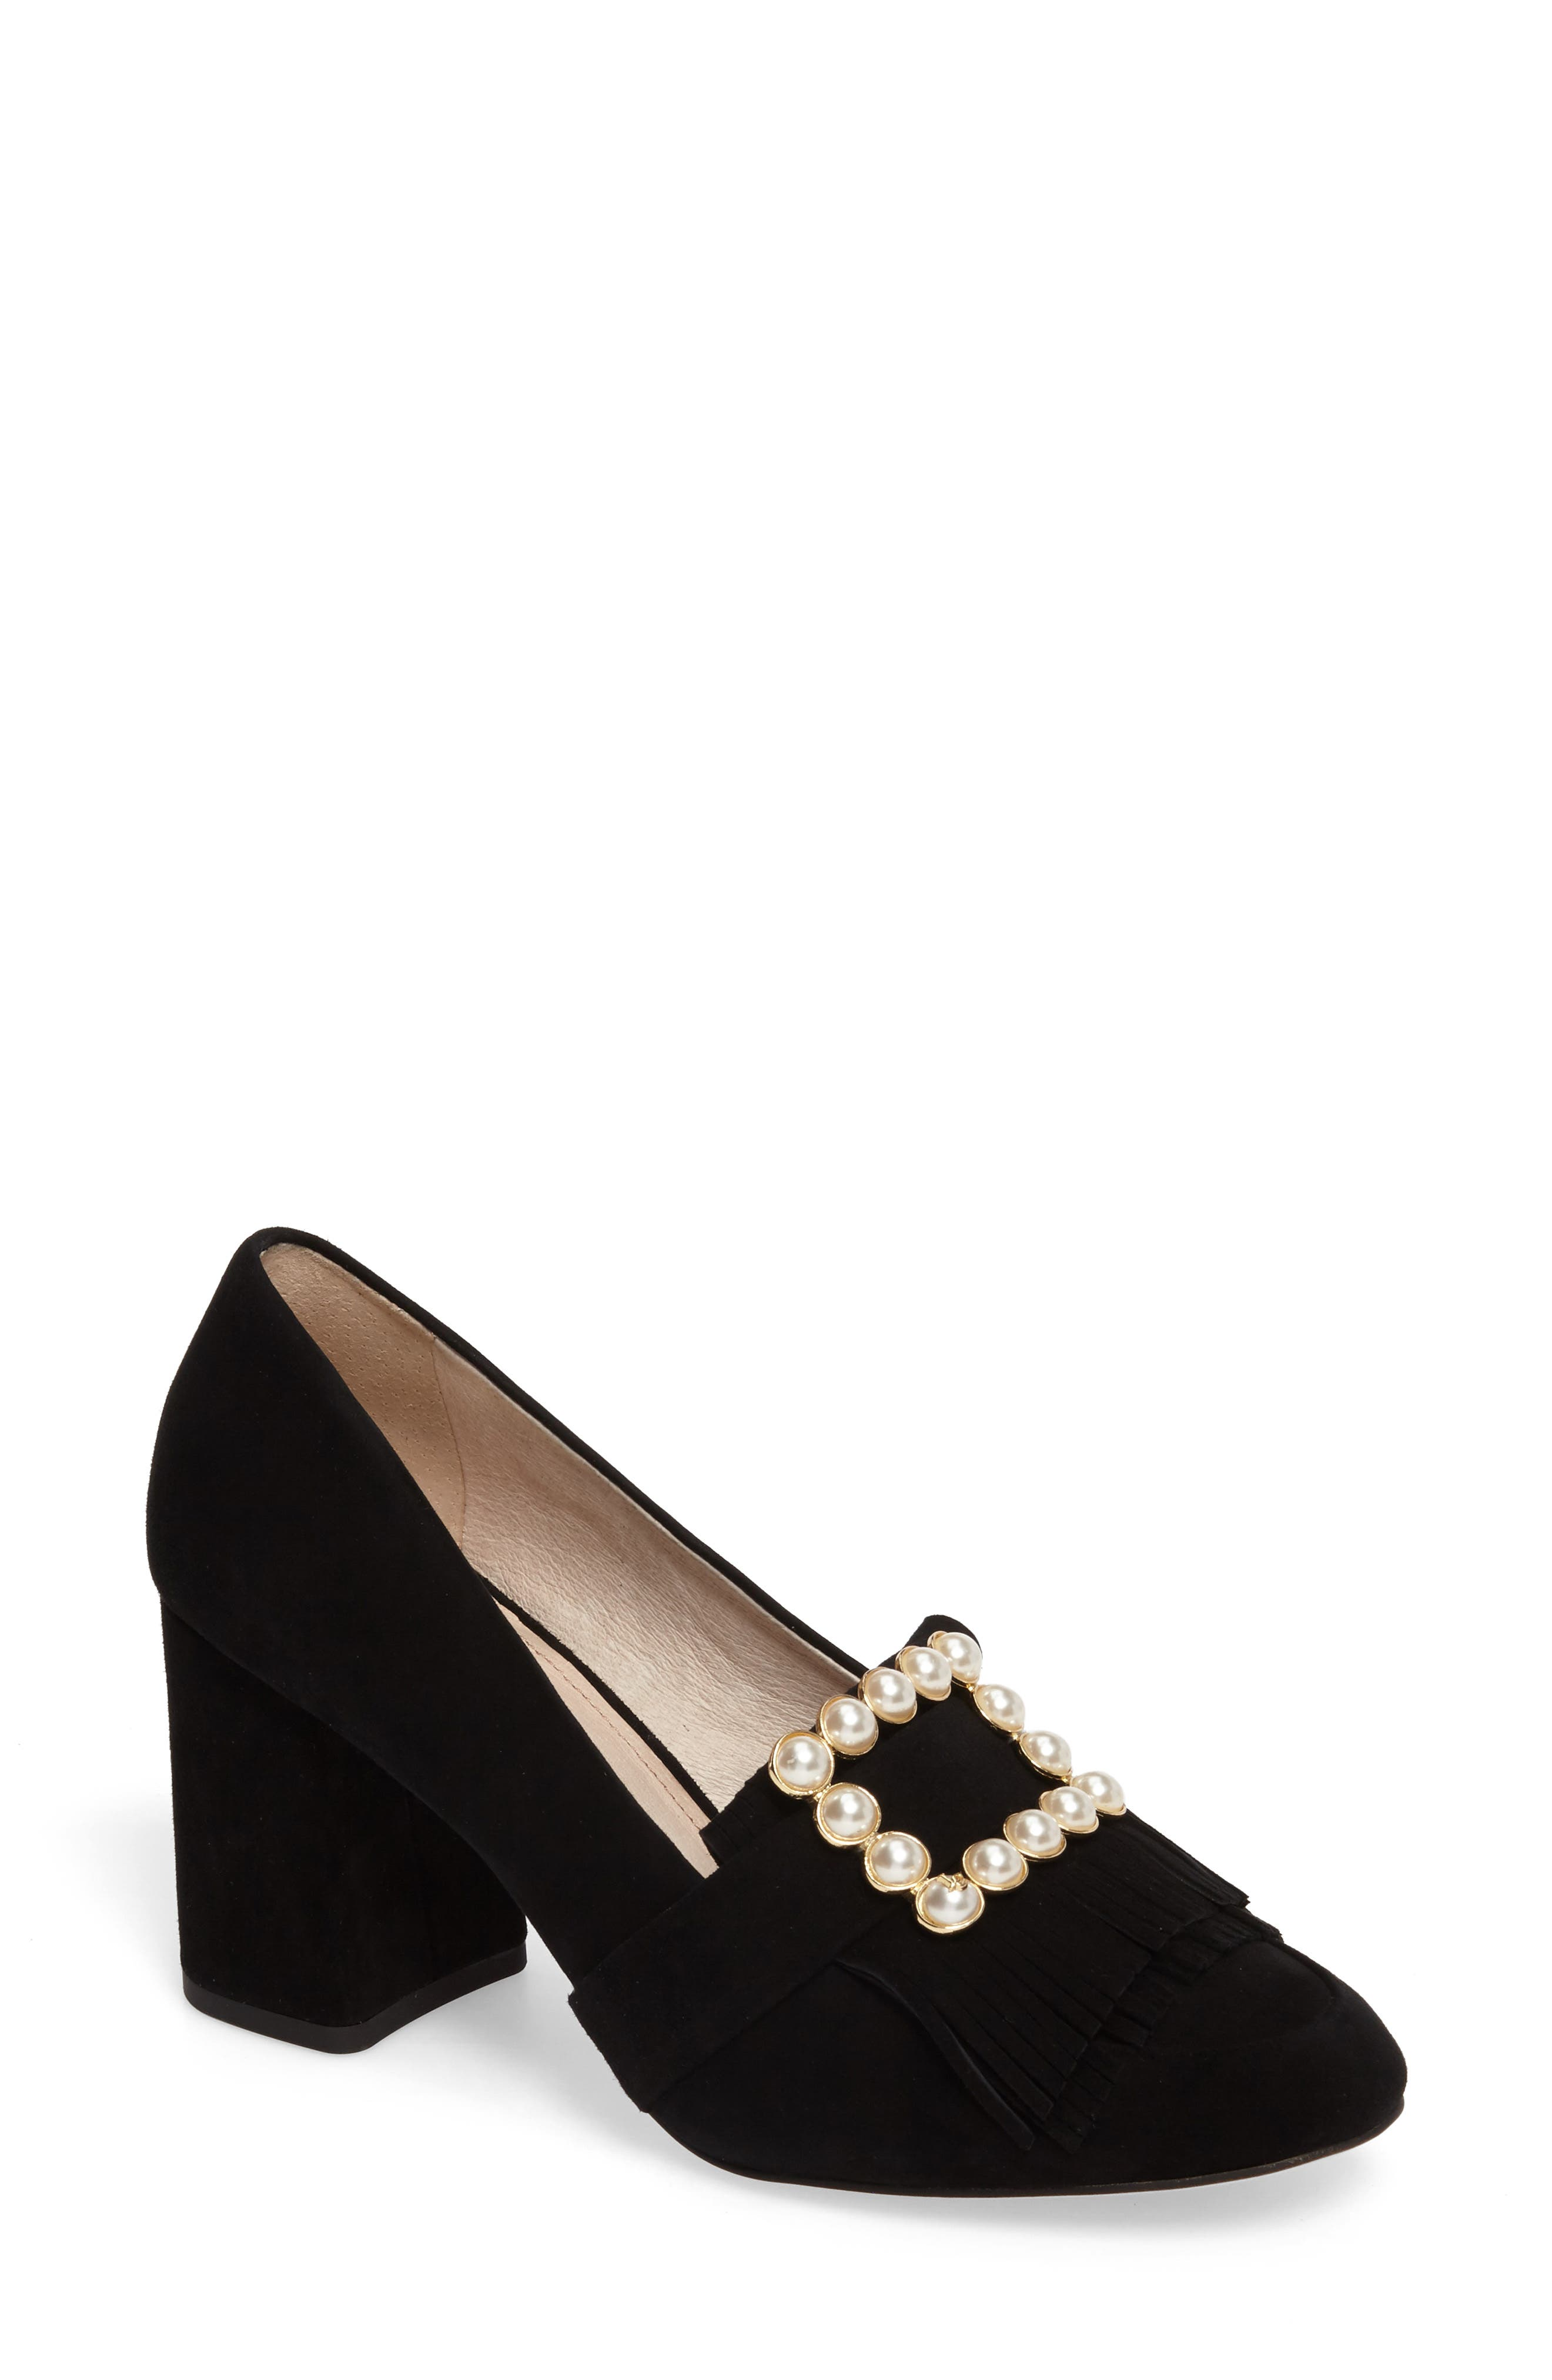 Alternate Image 1 Selected - Louise et Cie Idali Loafer Pump (Women)